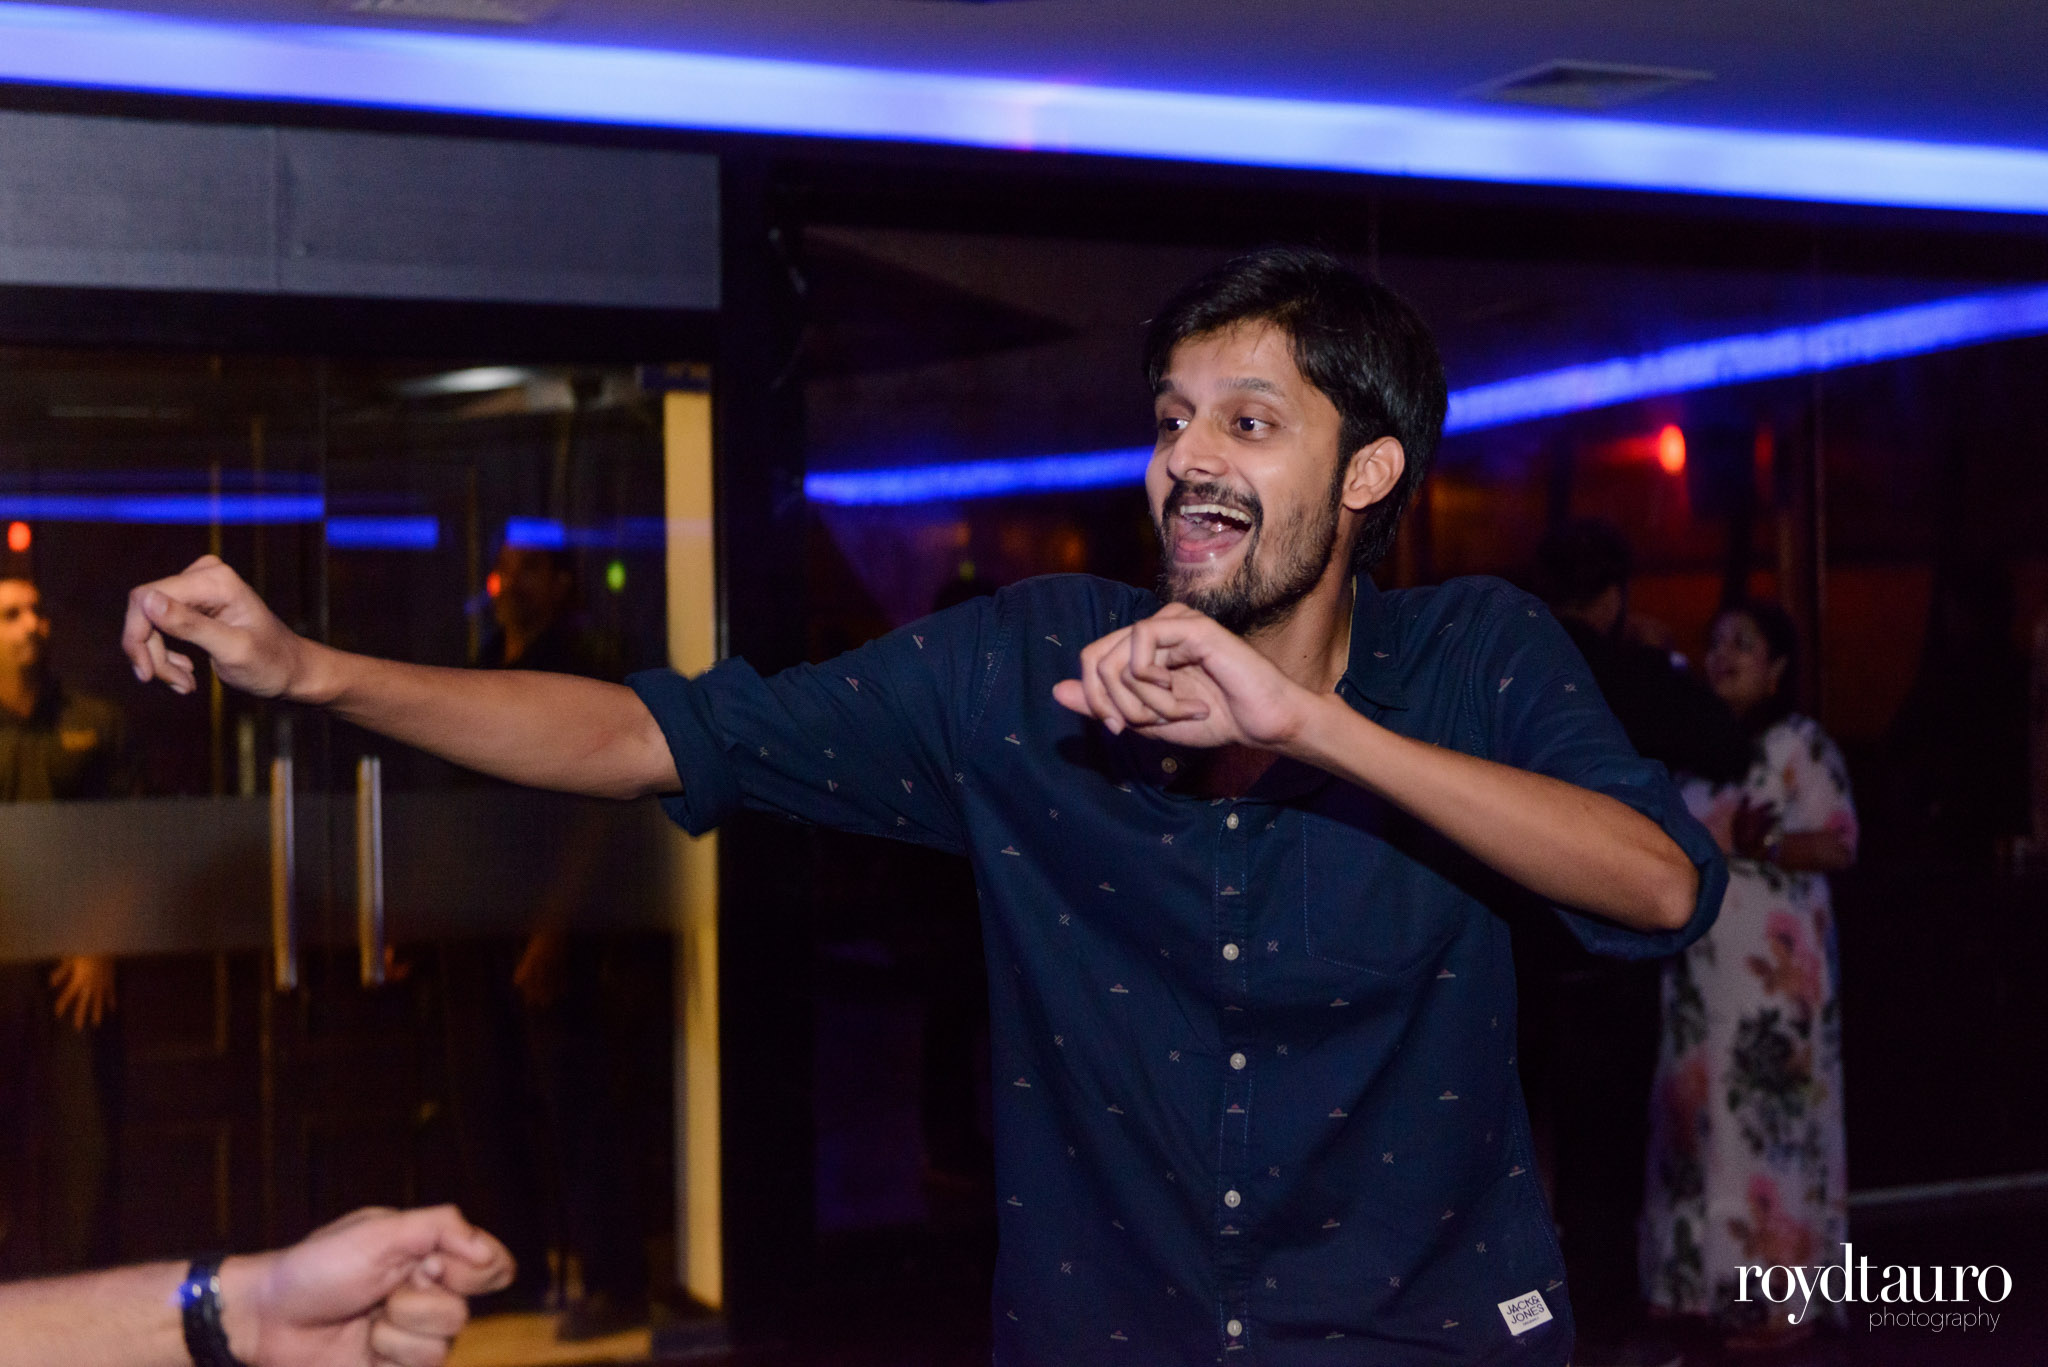 nikhil-madhura-cocktail-party-69.jpg